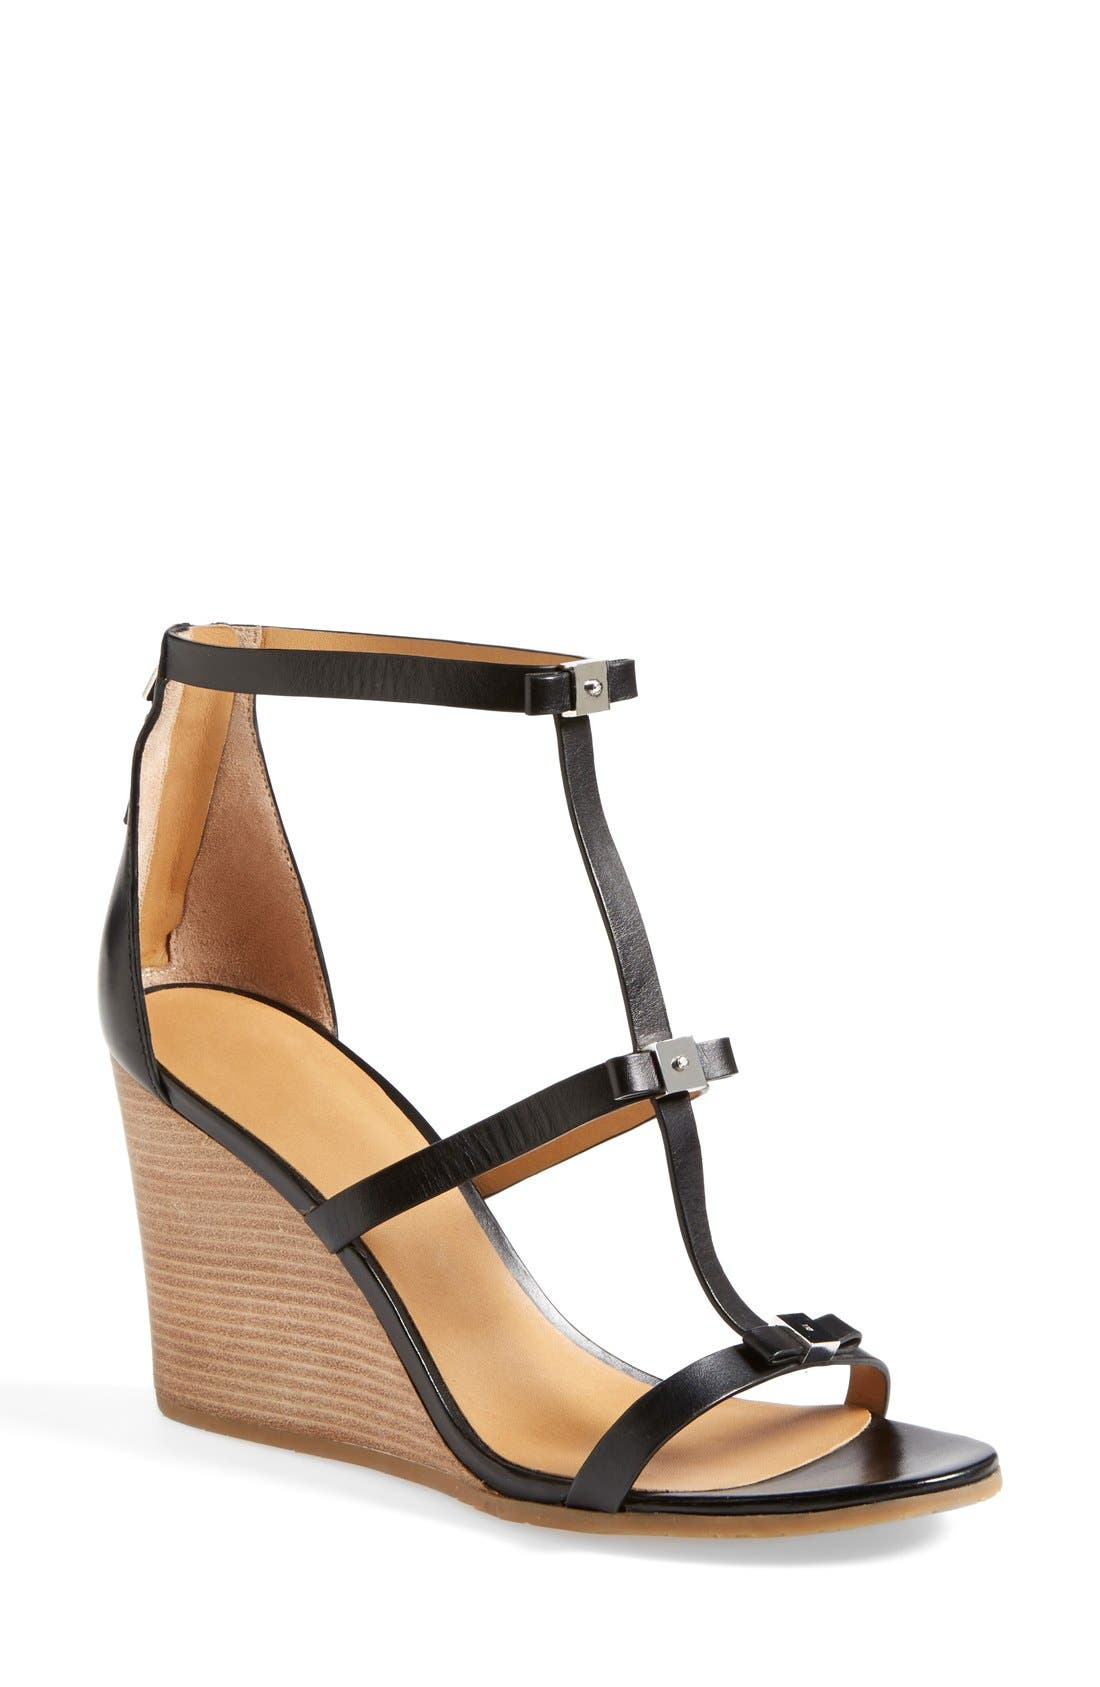 Main Image - MARC BY MARC JACOBS Cube Bow Leather Wedge Sandal (Women)